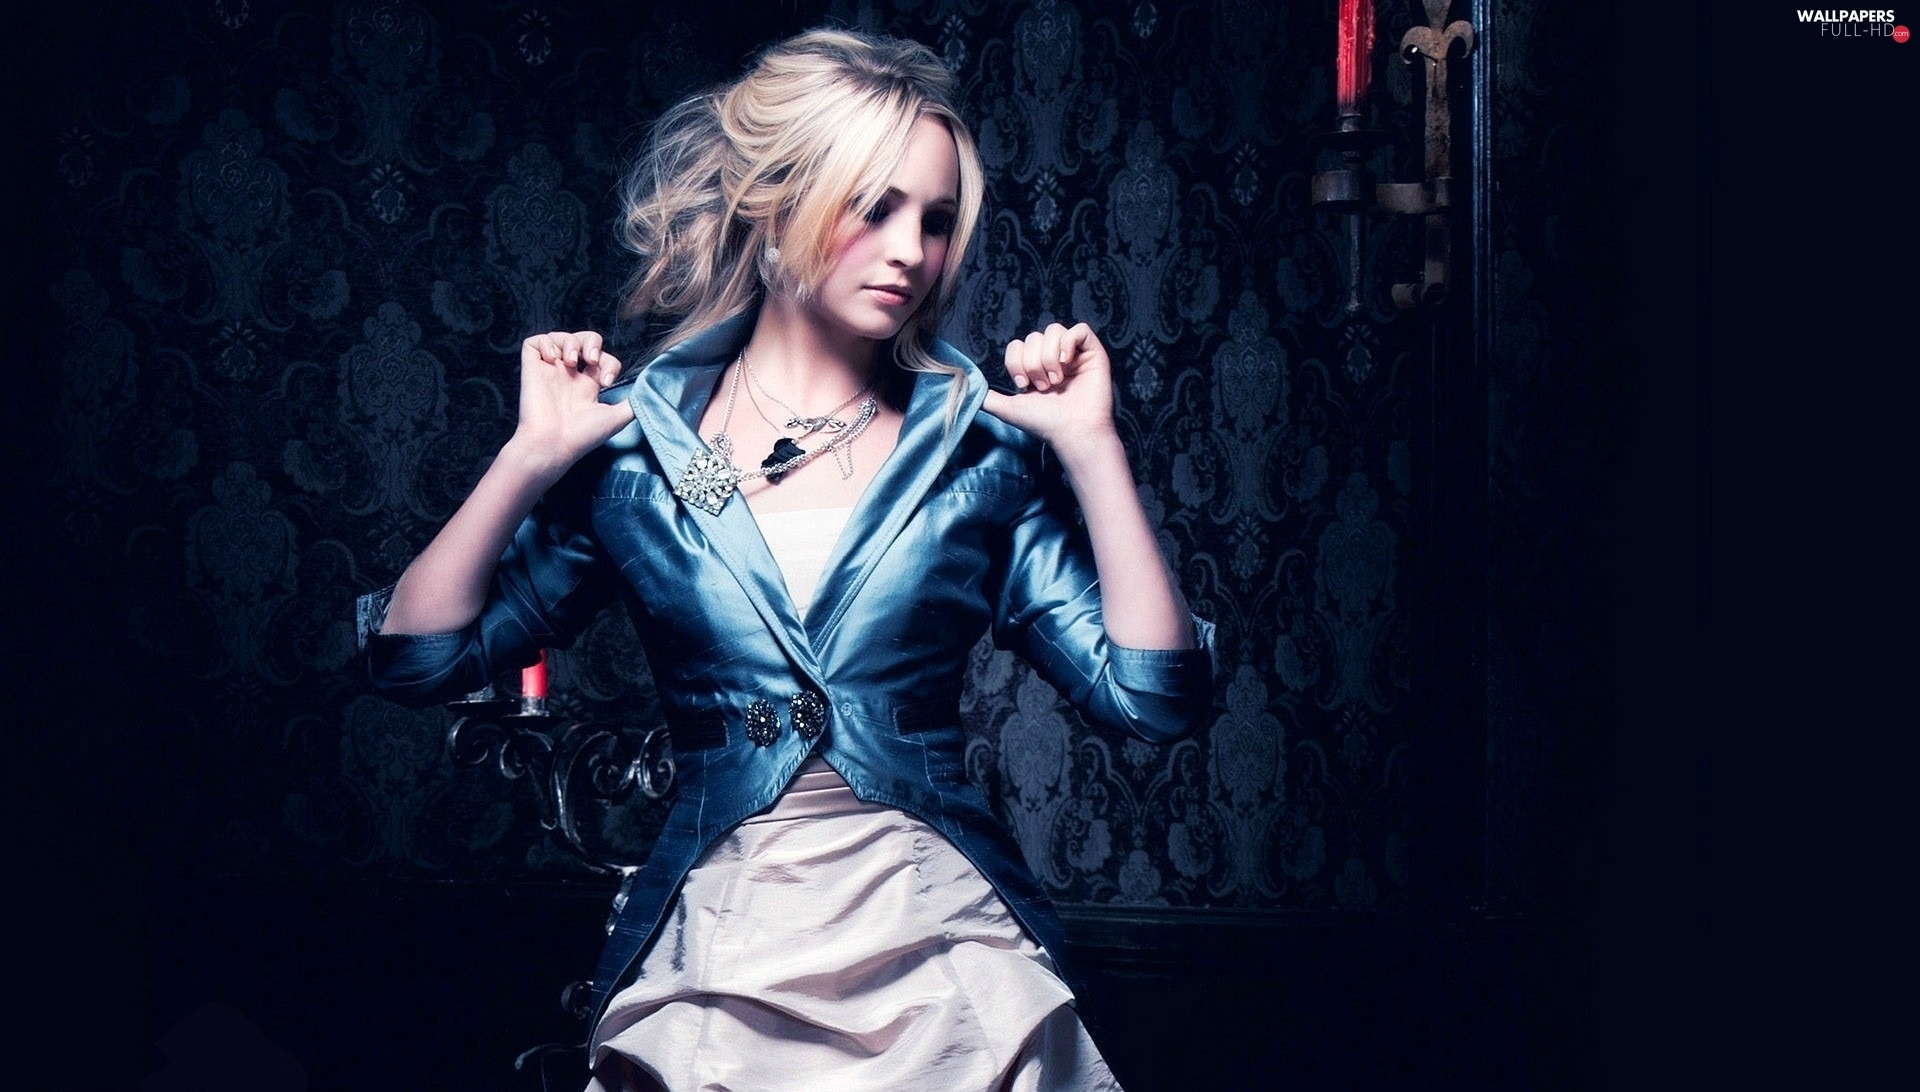 jacket, Dress, Candice Accola, night wear